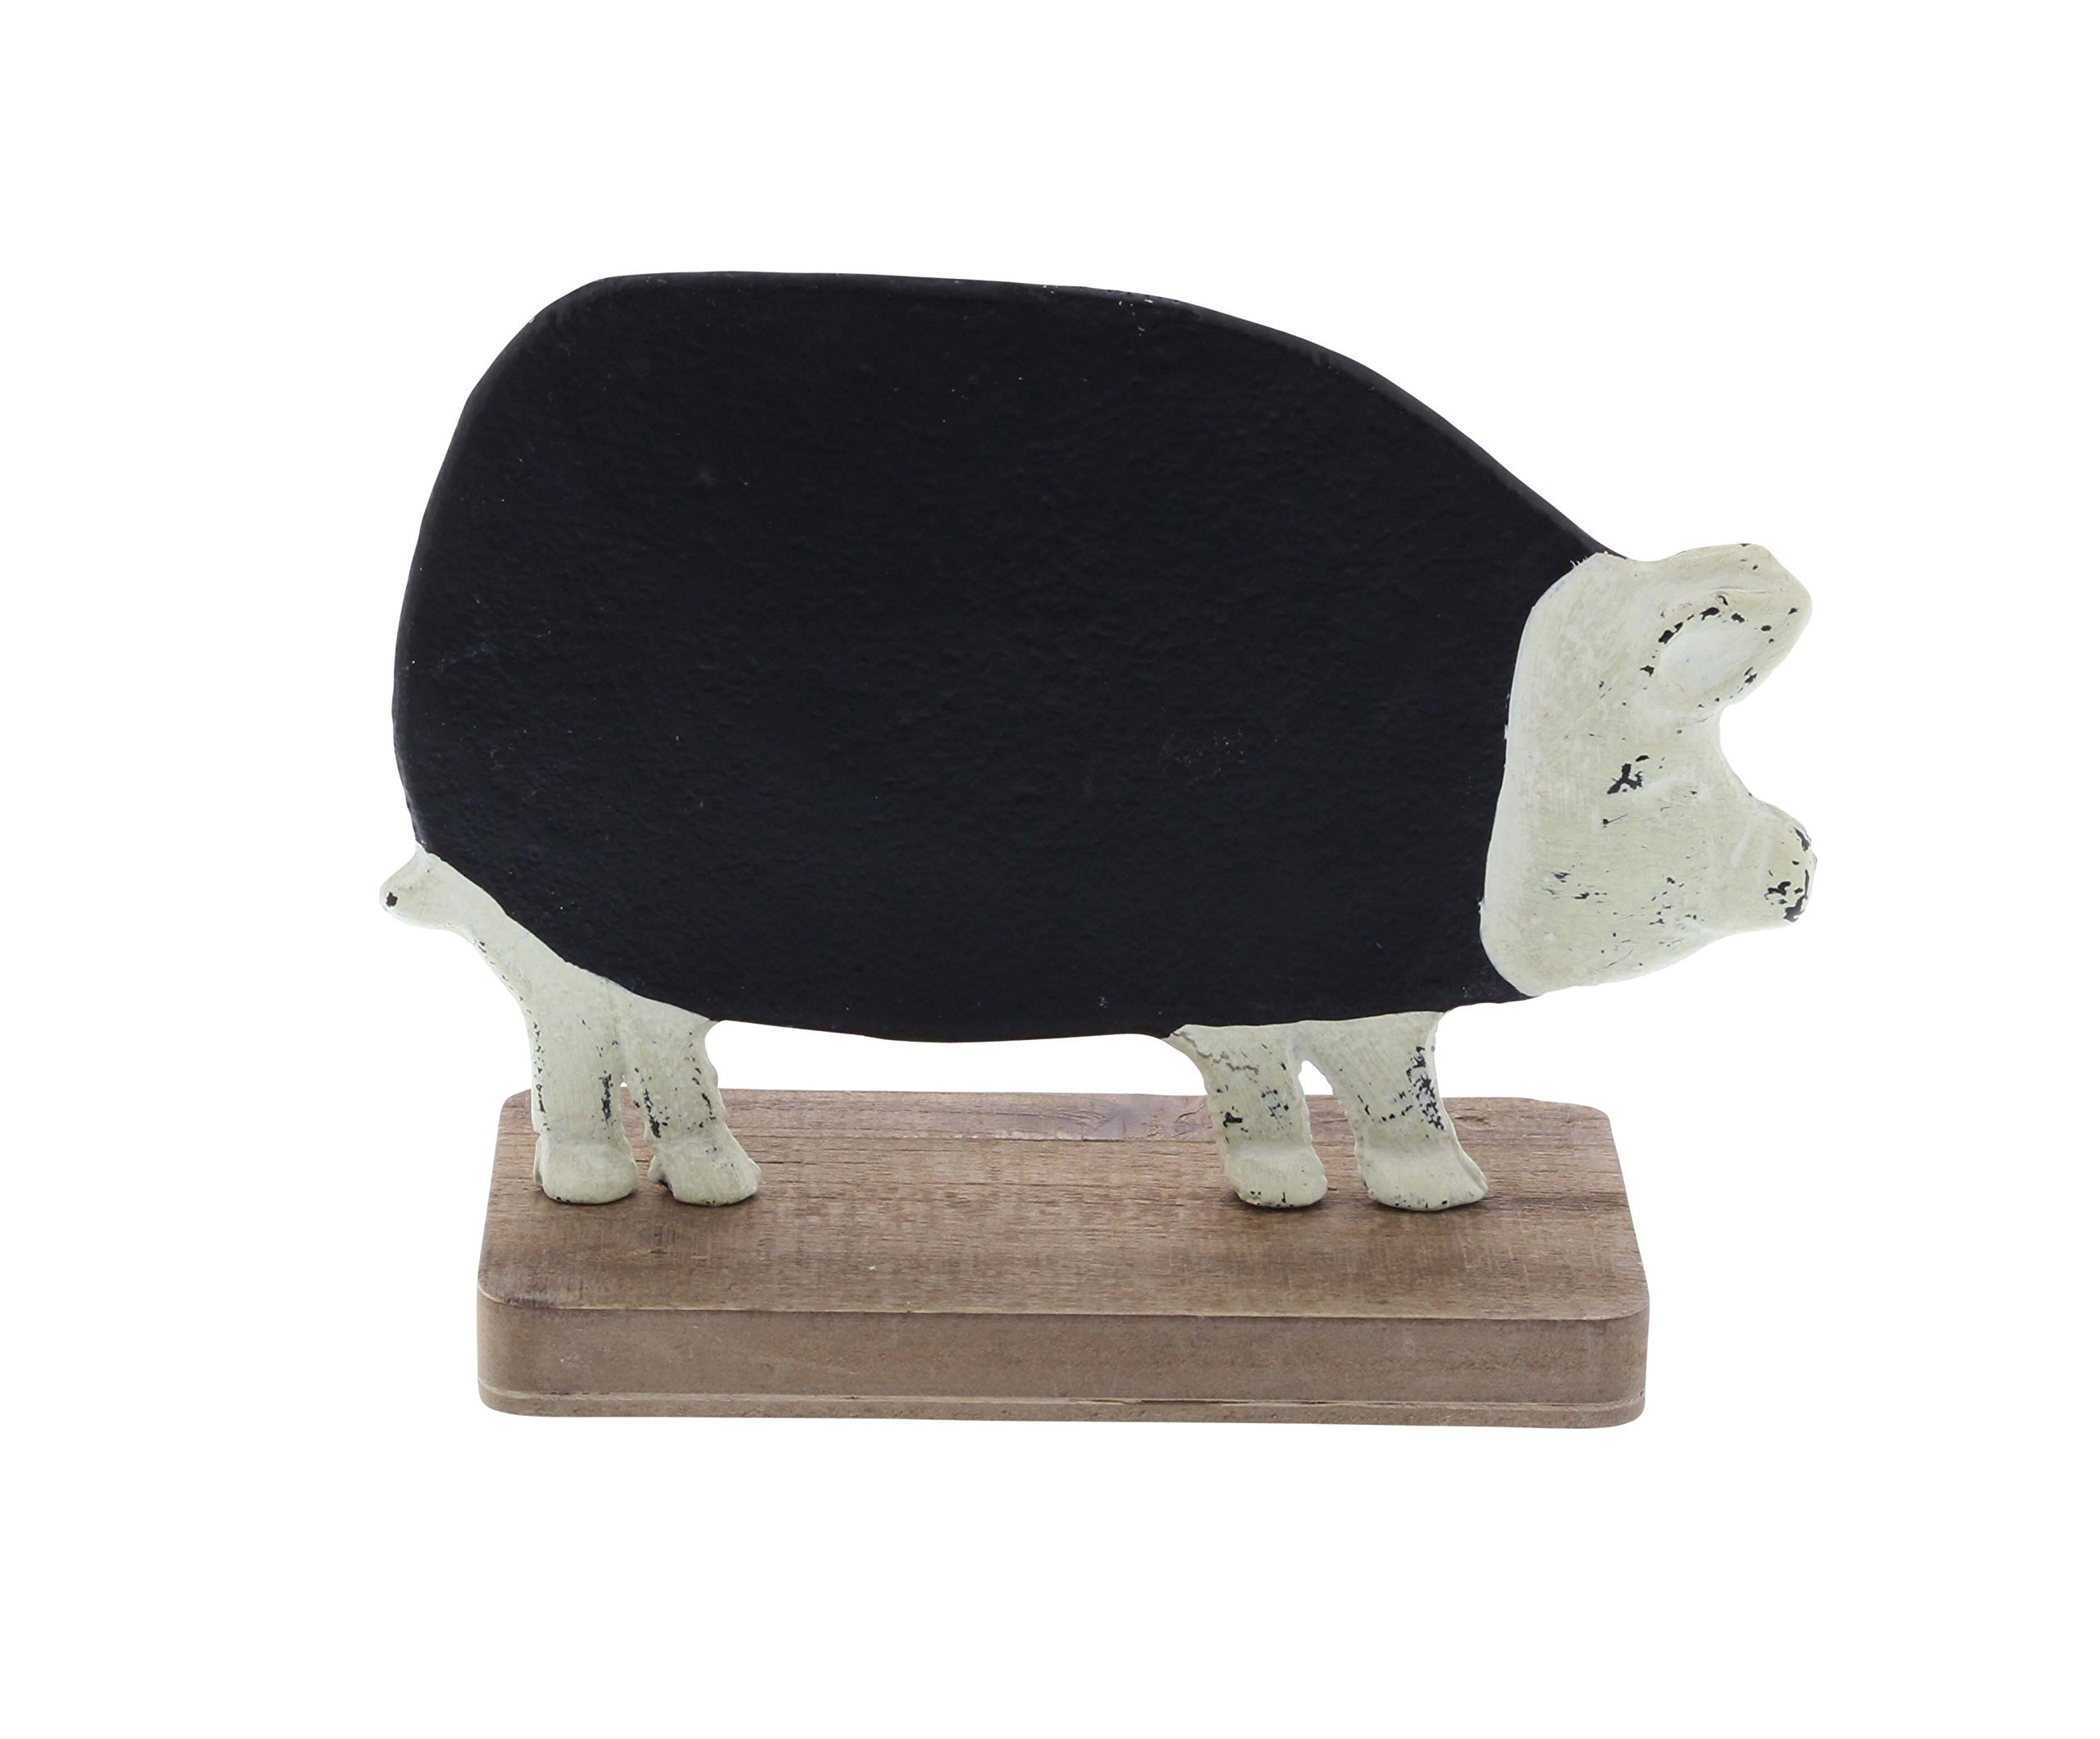 Deco 79 59437 Distressed Iron and Fir Wood Pig Chalkboard, Black/White/Brown